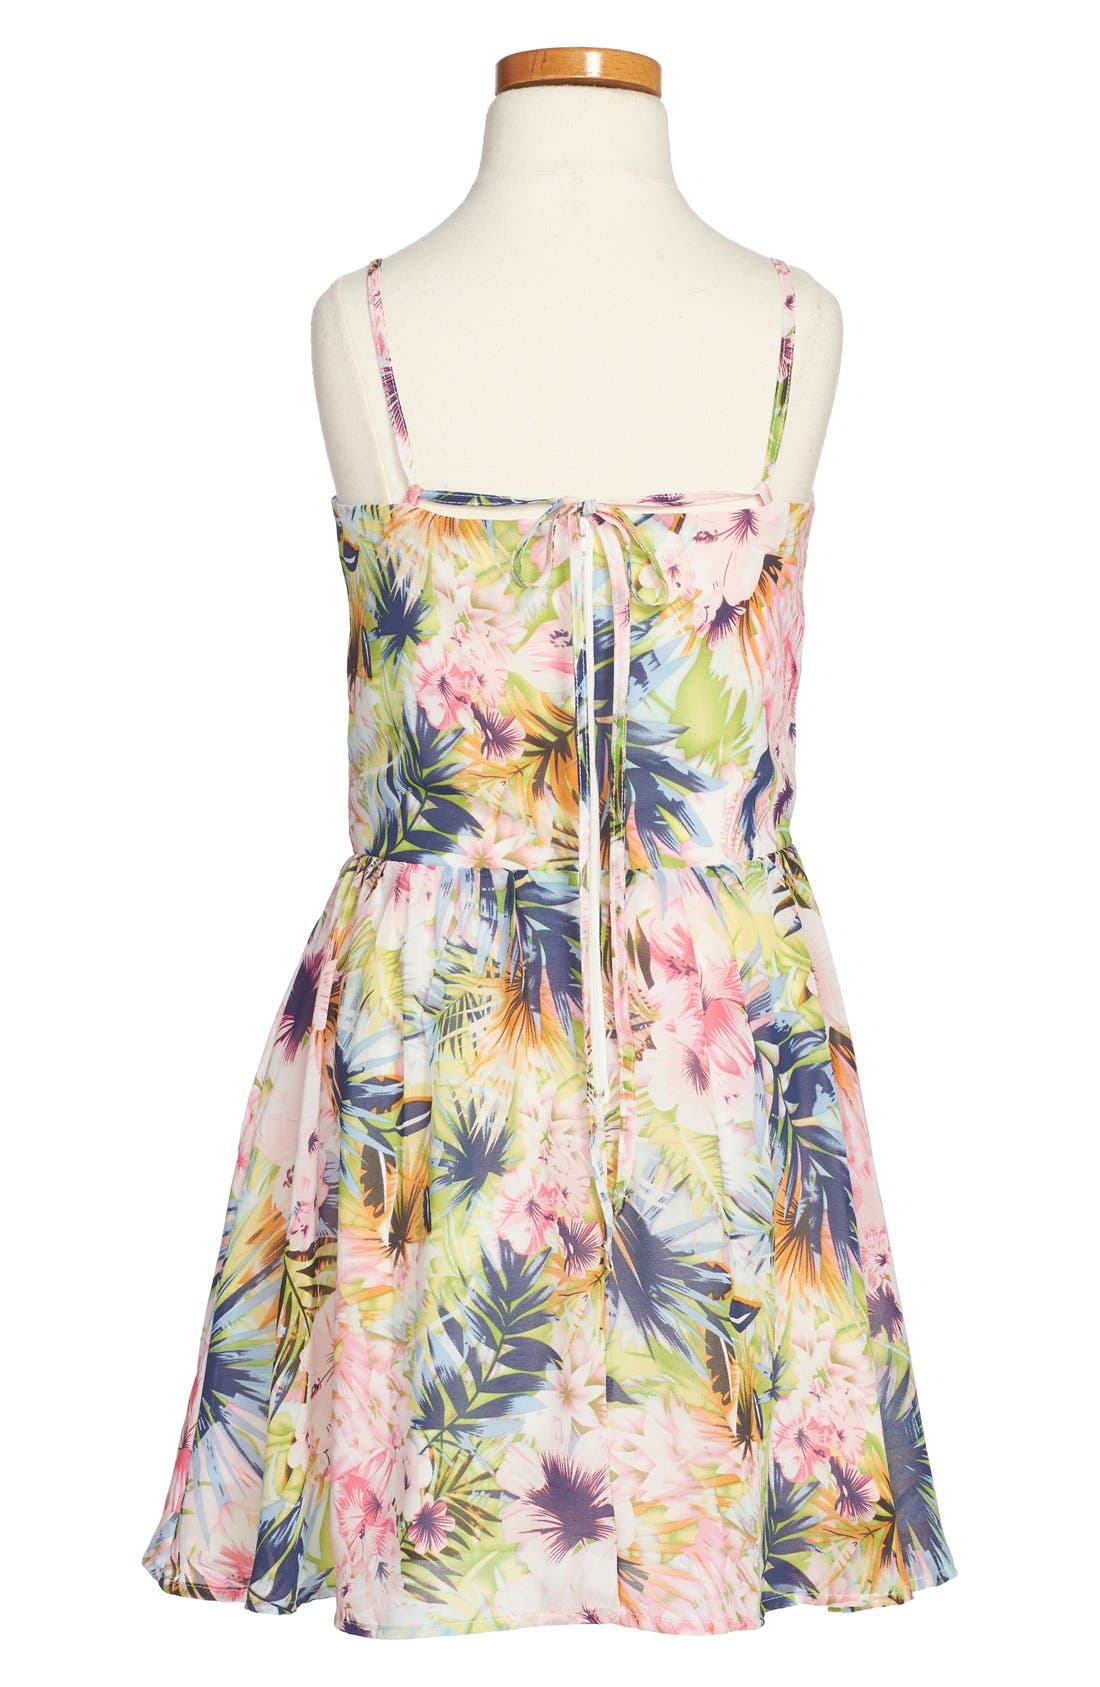 Alternate Image 2  - Miss Behave 'Laurie' Floral Print Sleeveless Dress (Big Girls)